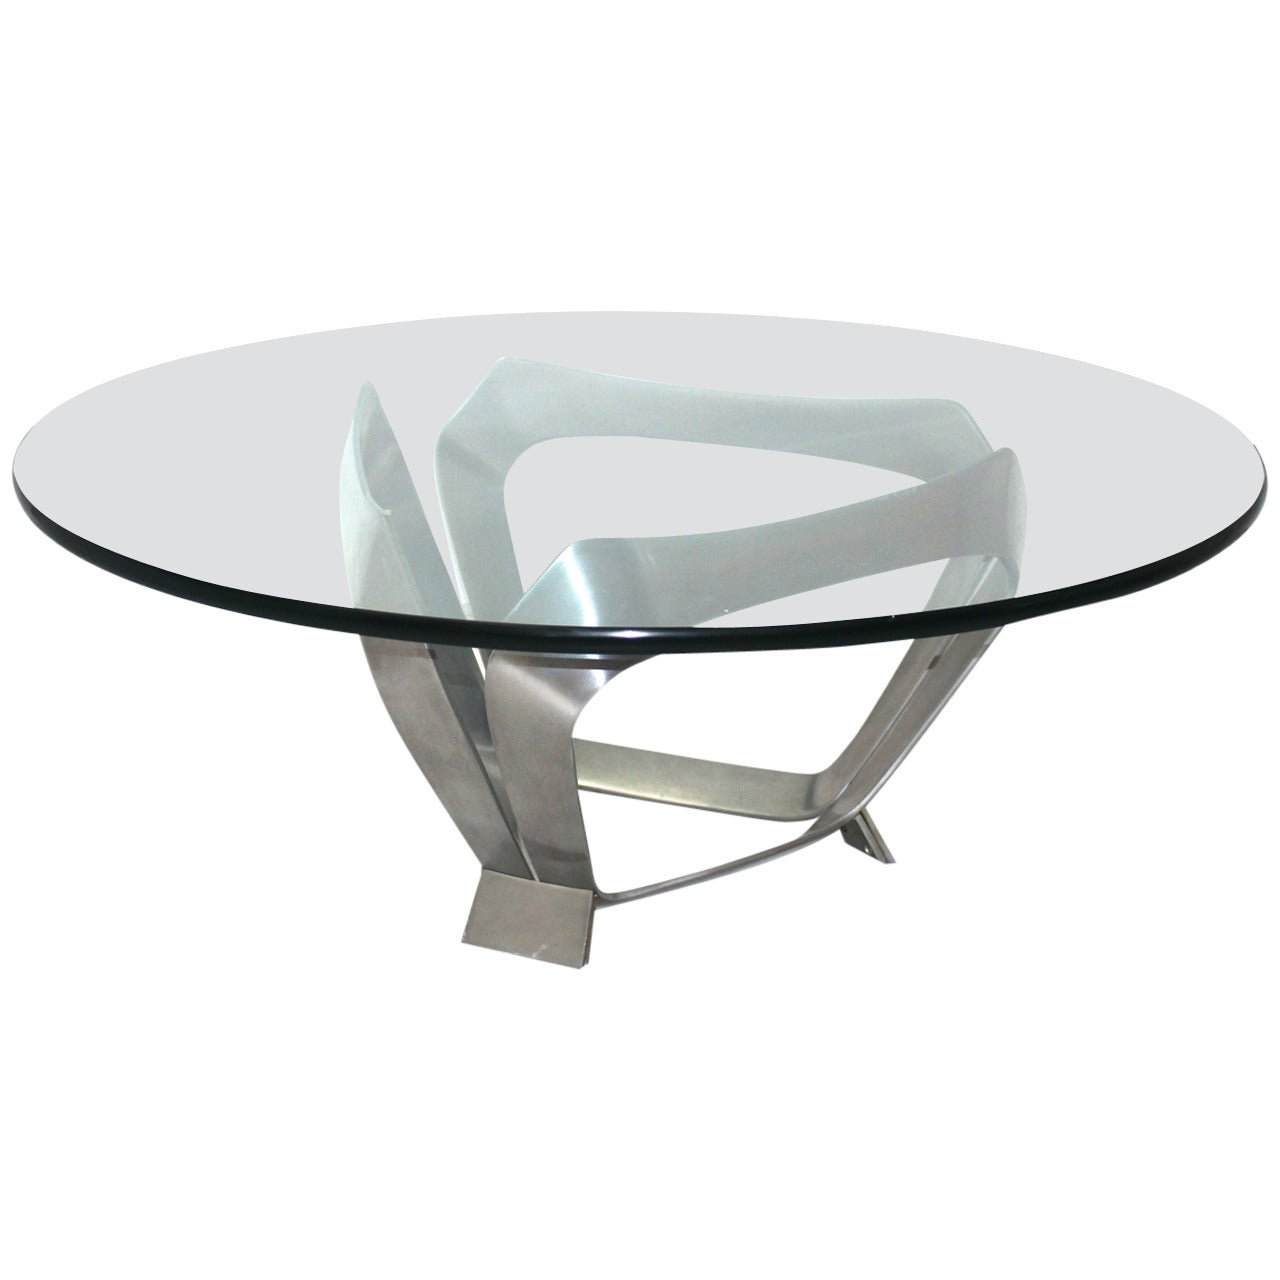 Modernist Aluminum Glass Vintage Coffee Table by Knut Hesterberg, Germany, 1970